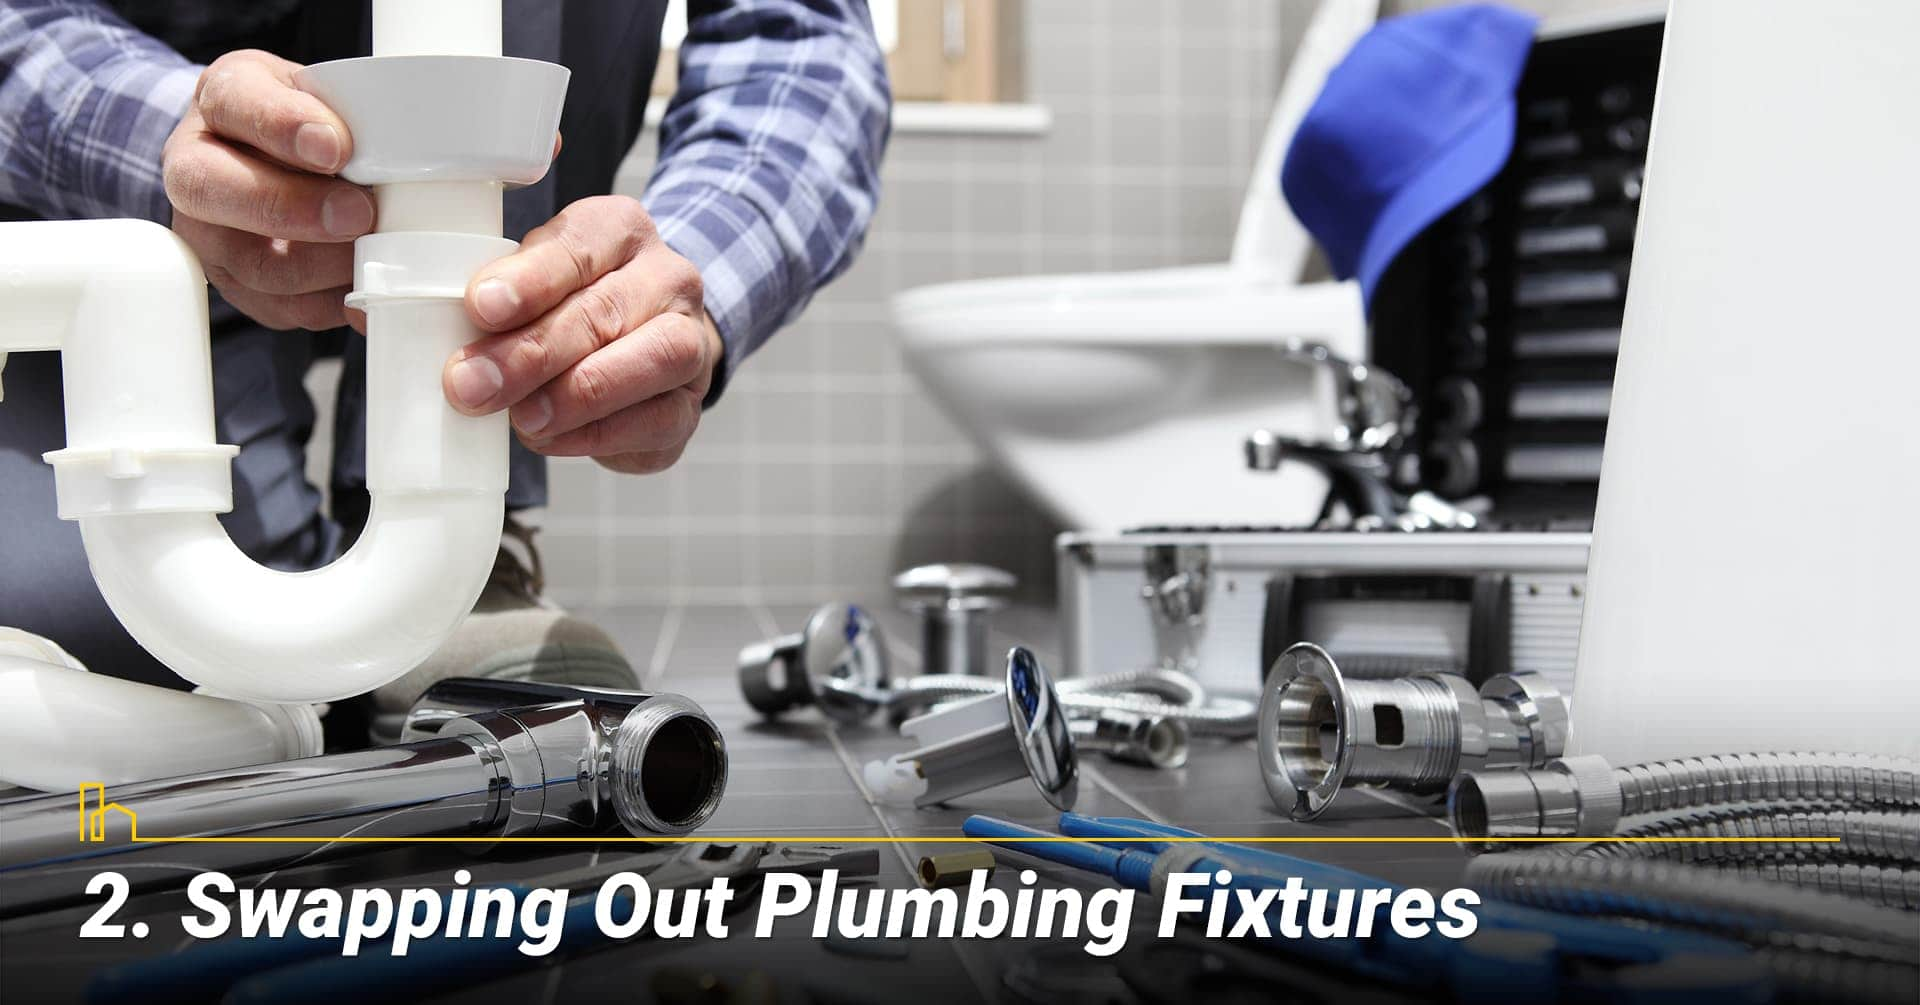 Swapping Out Plumbing Fixtures, replace old plumbing fixtures